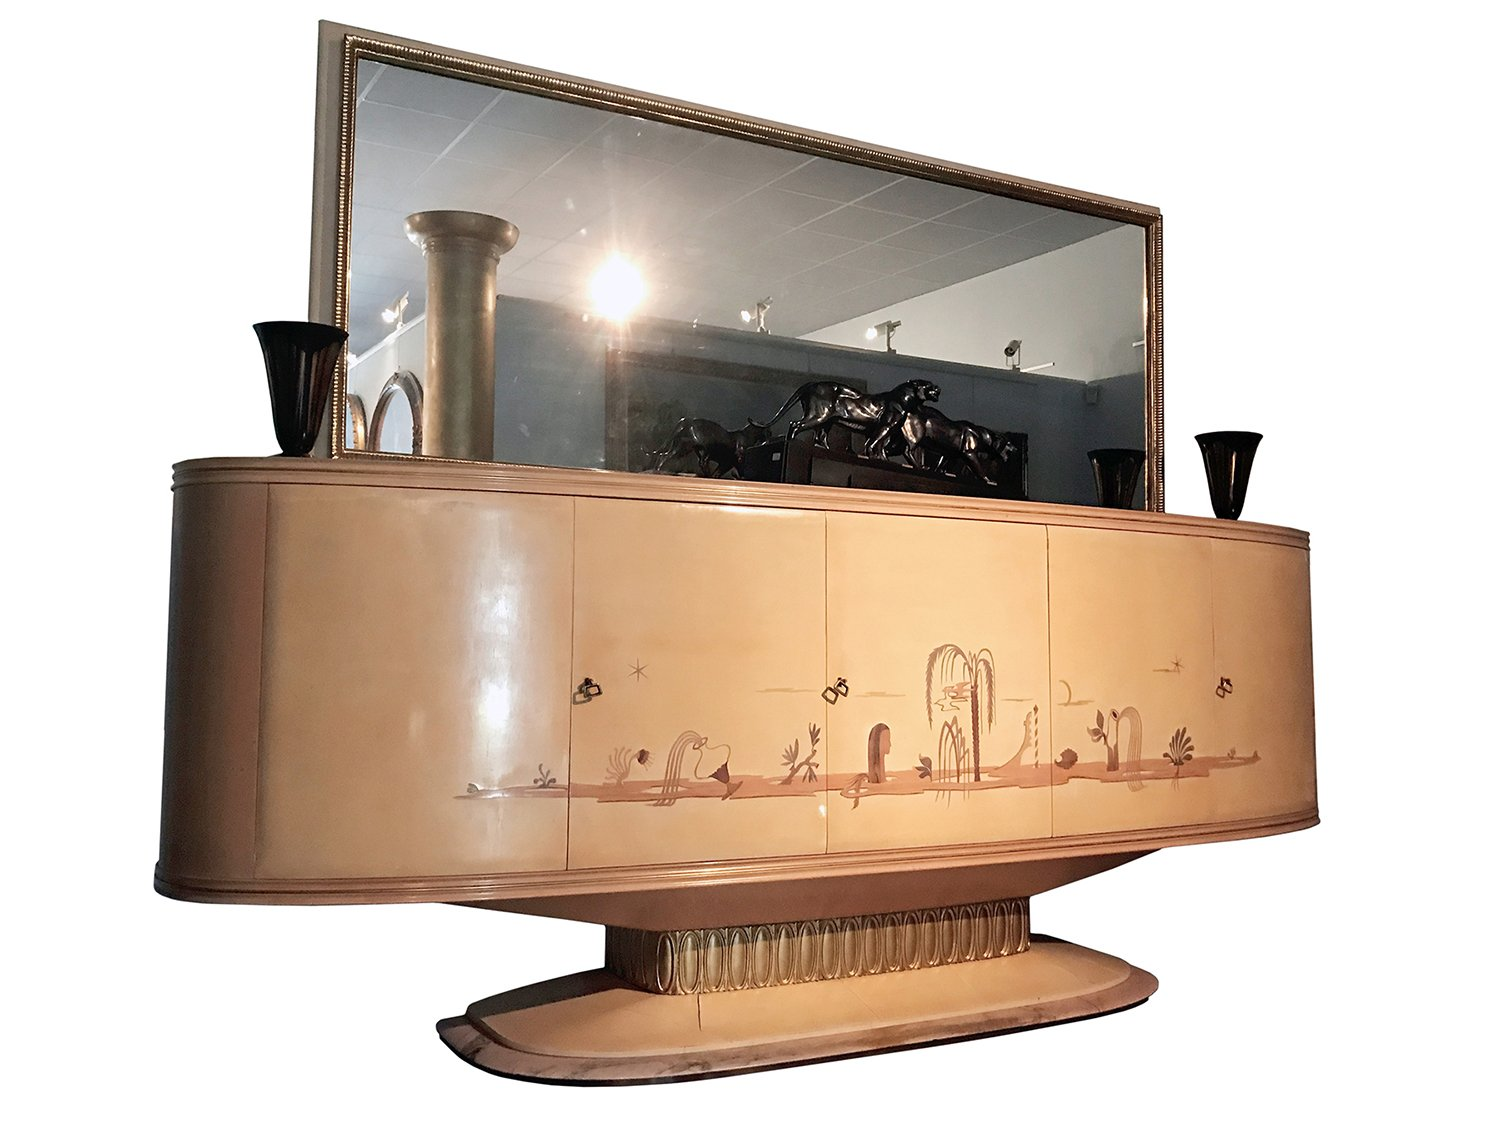 Italian Art Deco Sideboard With Mirror From Galleria Mobili D Arte